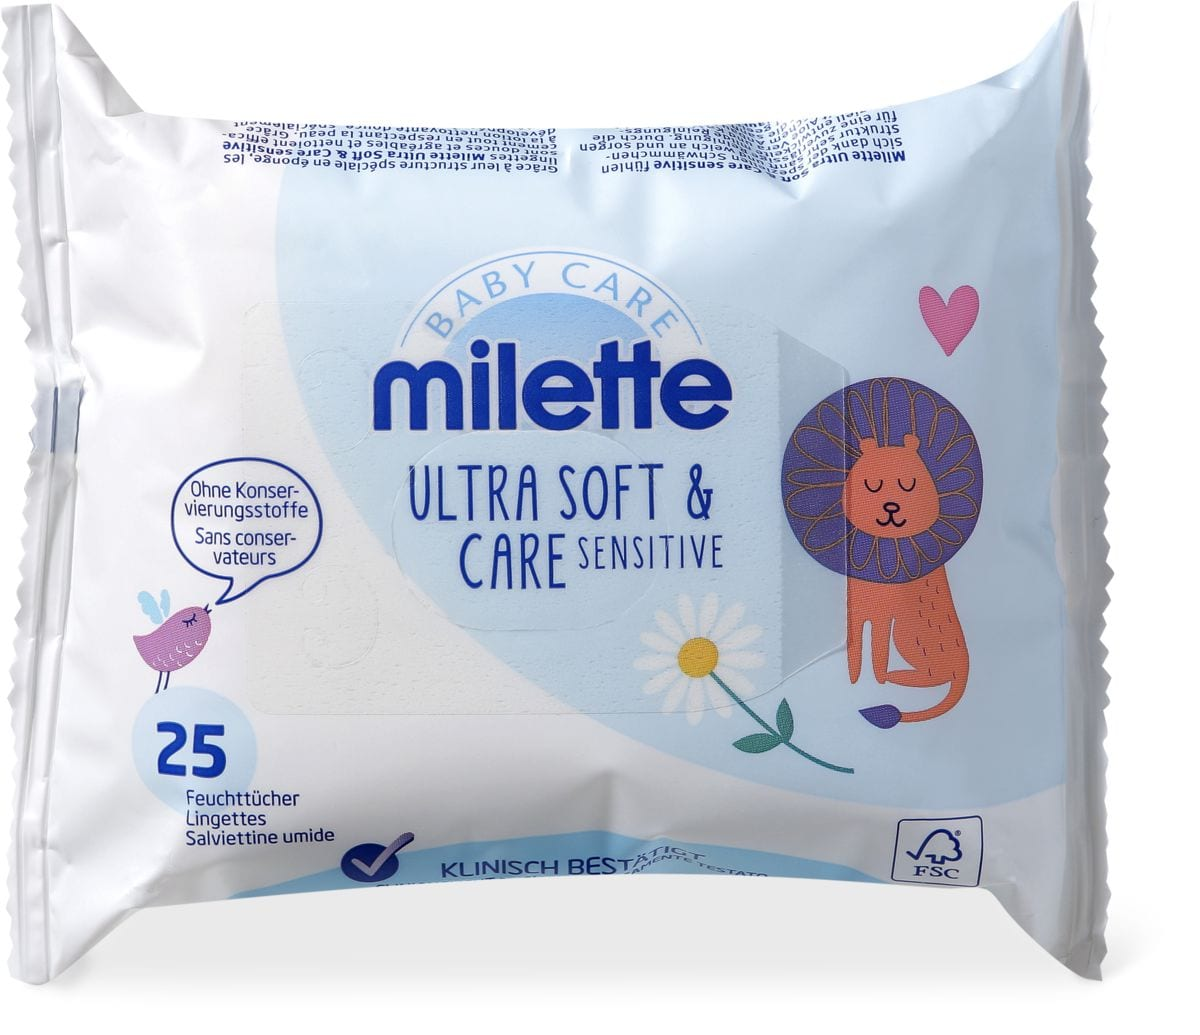 Milette Ultra Soft & Care Sen. Reisep.